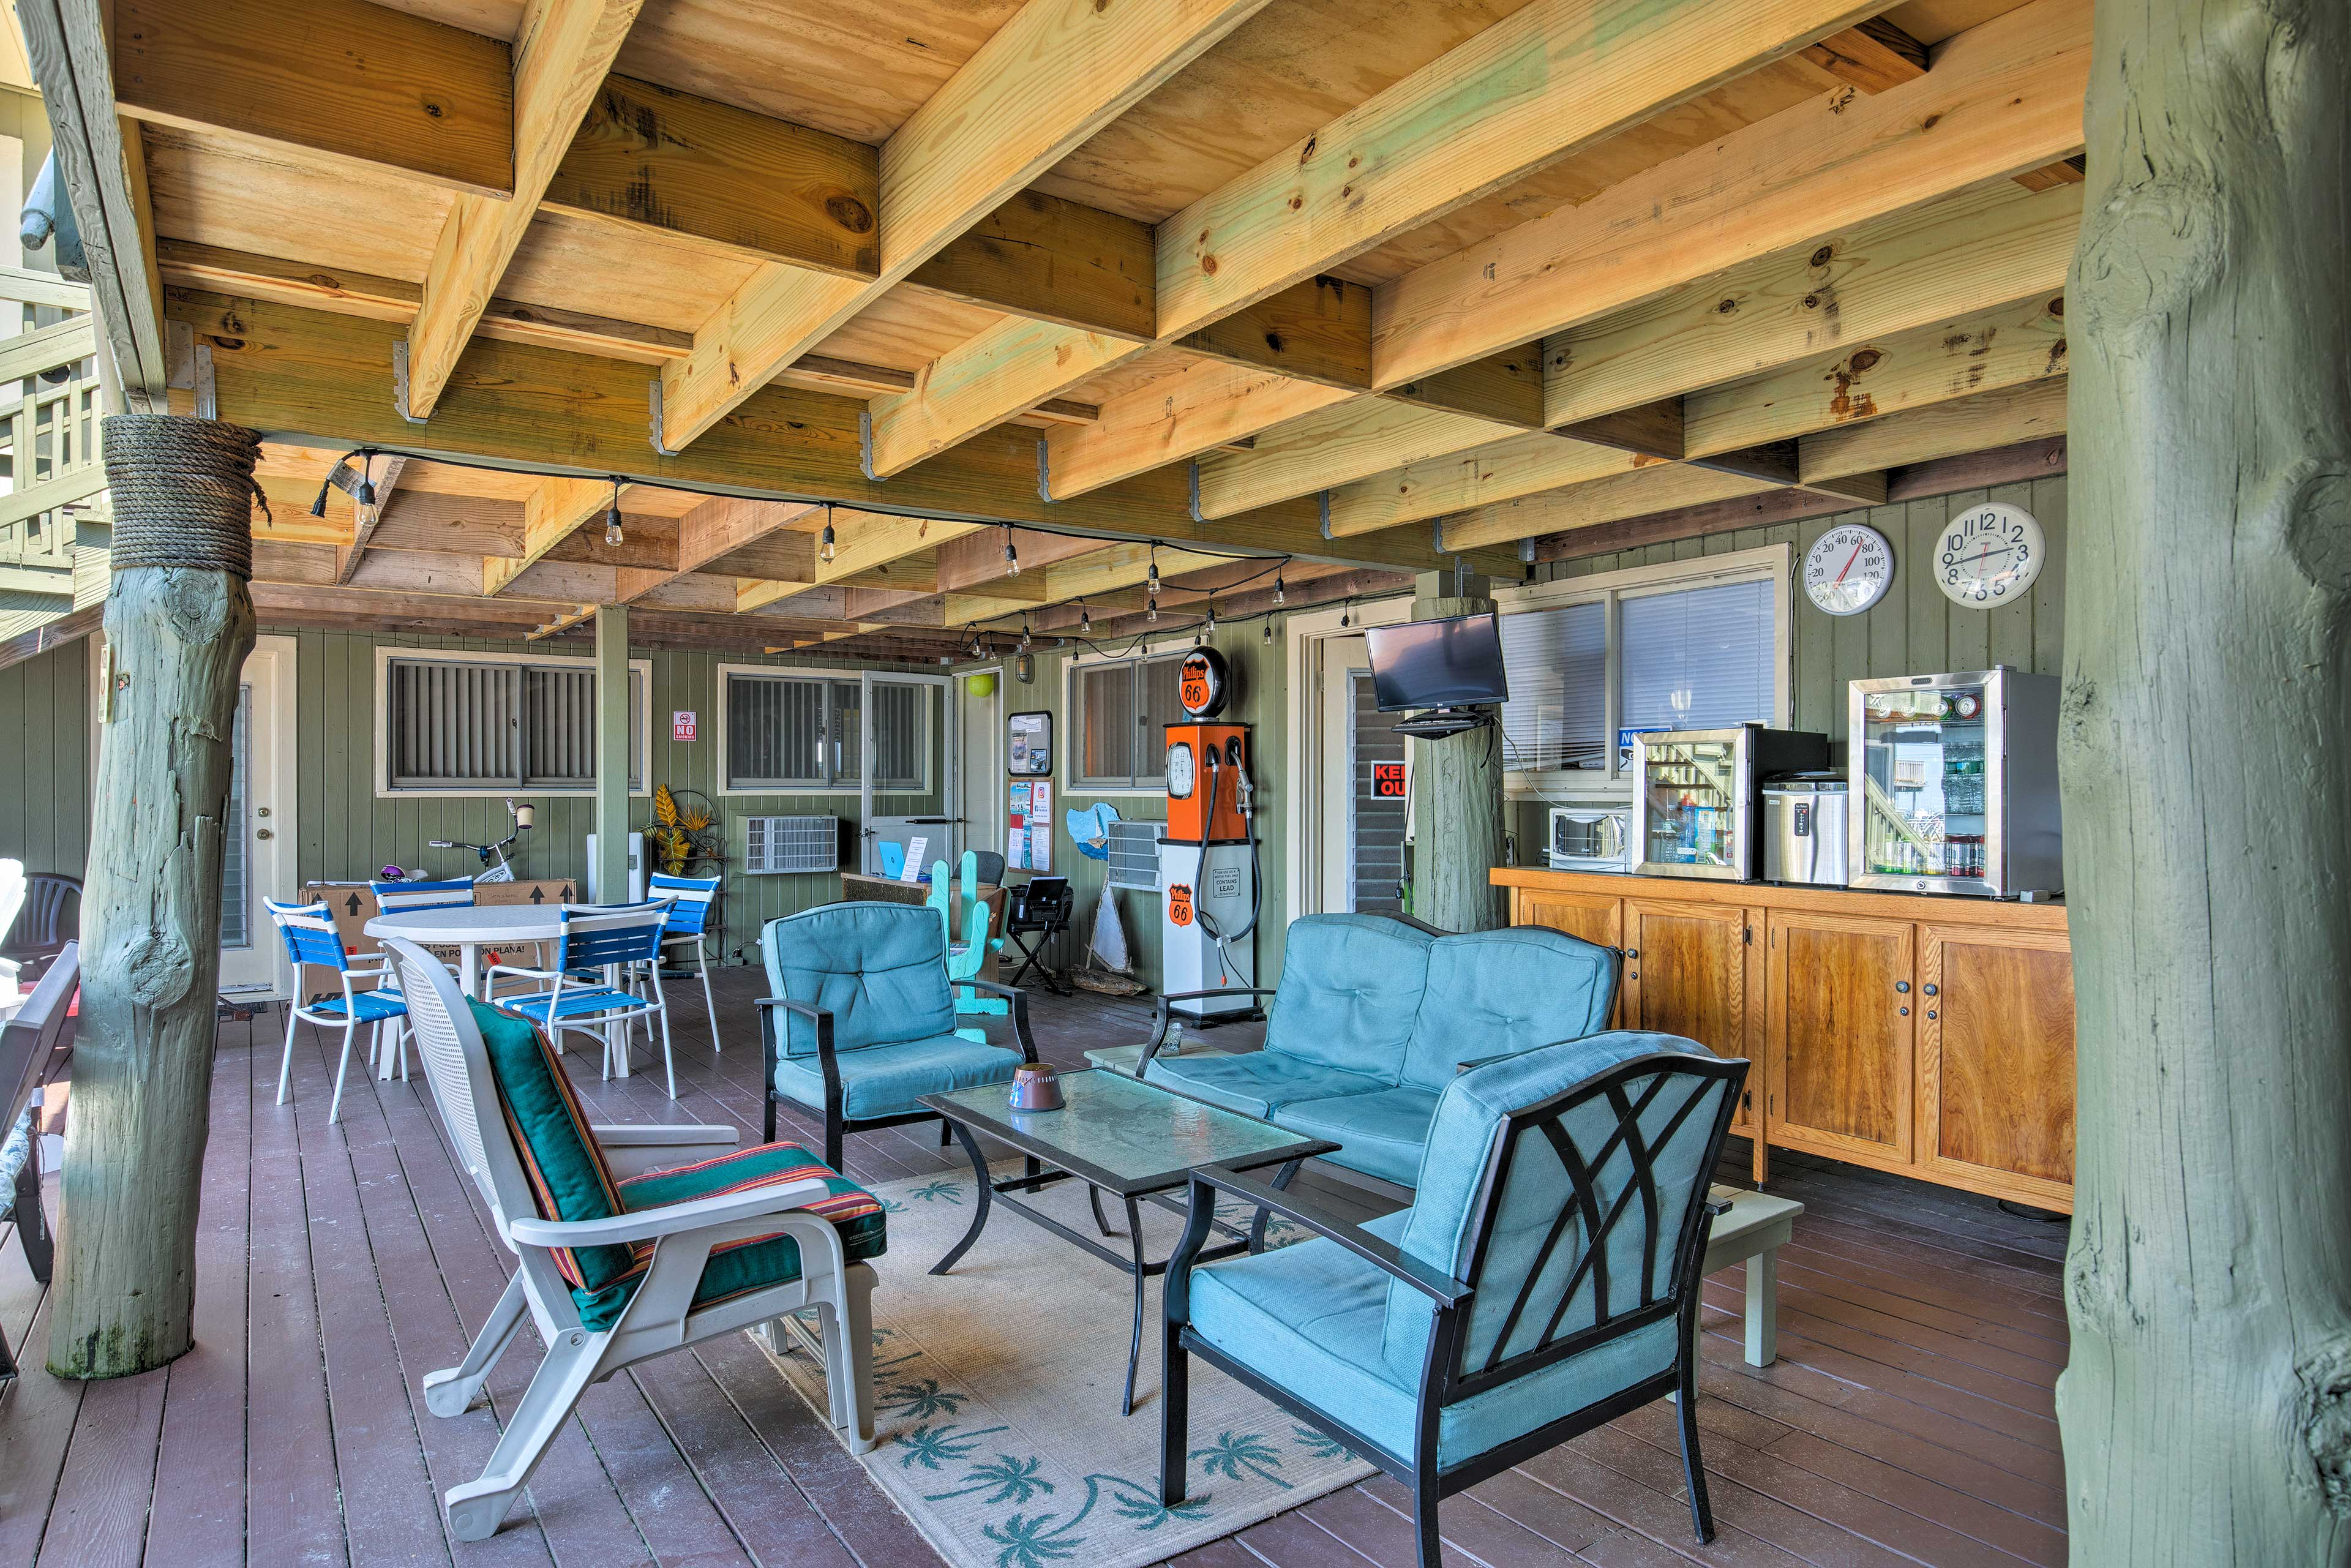 Need a break from the sun? The covered patio is steps away.